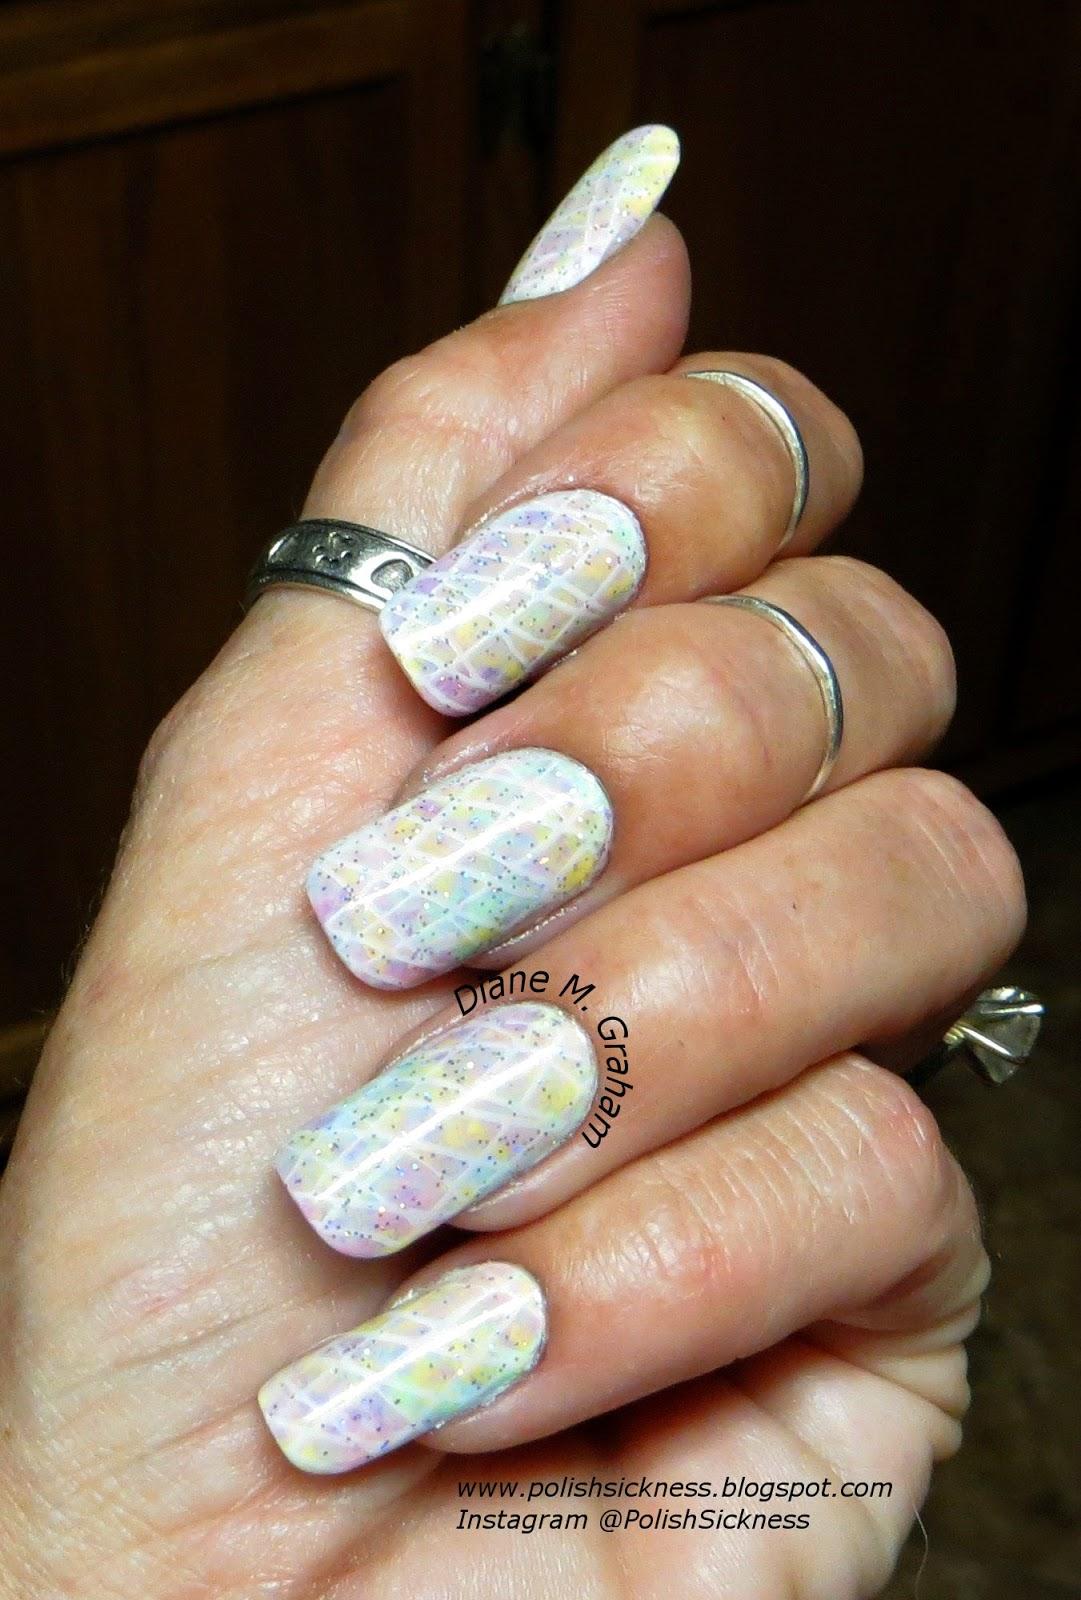 China Glaze Lemon Fizz, Highlight of the Summer, Essie Play Date, QRS Cruiser, Barielle Pink Quartz, Orly Shine on Crazy Diamond, DRK-A stamp